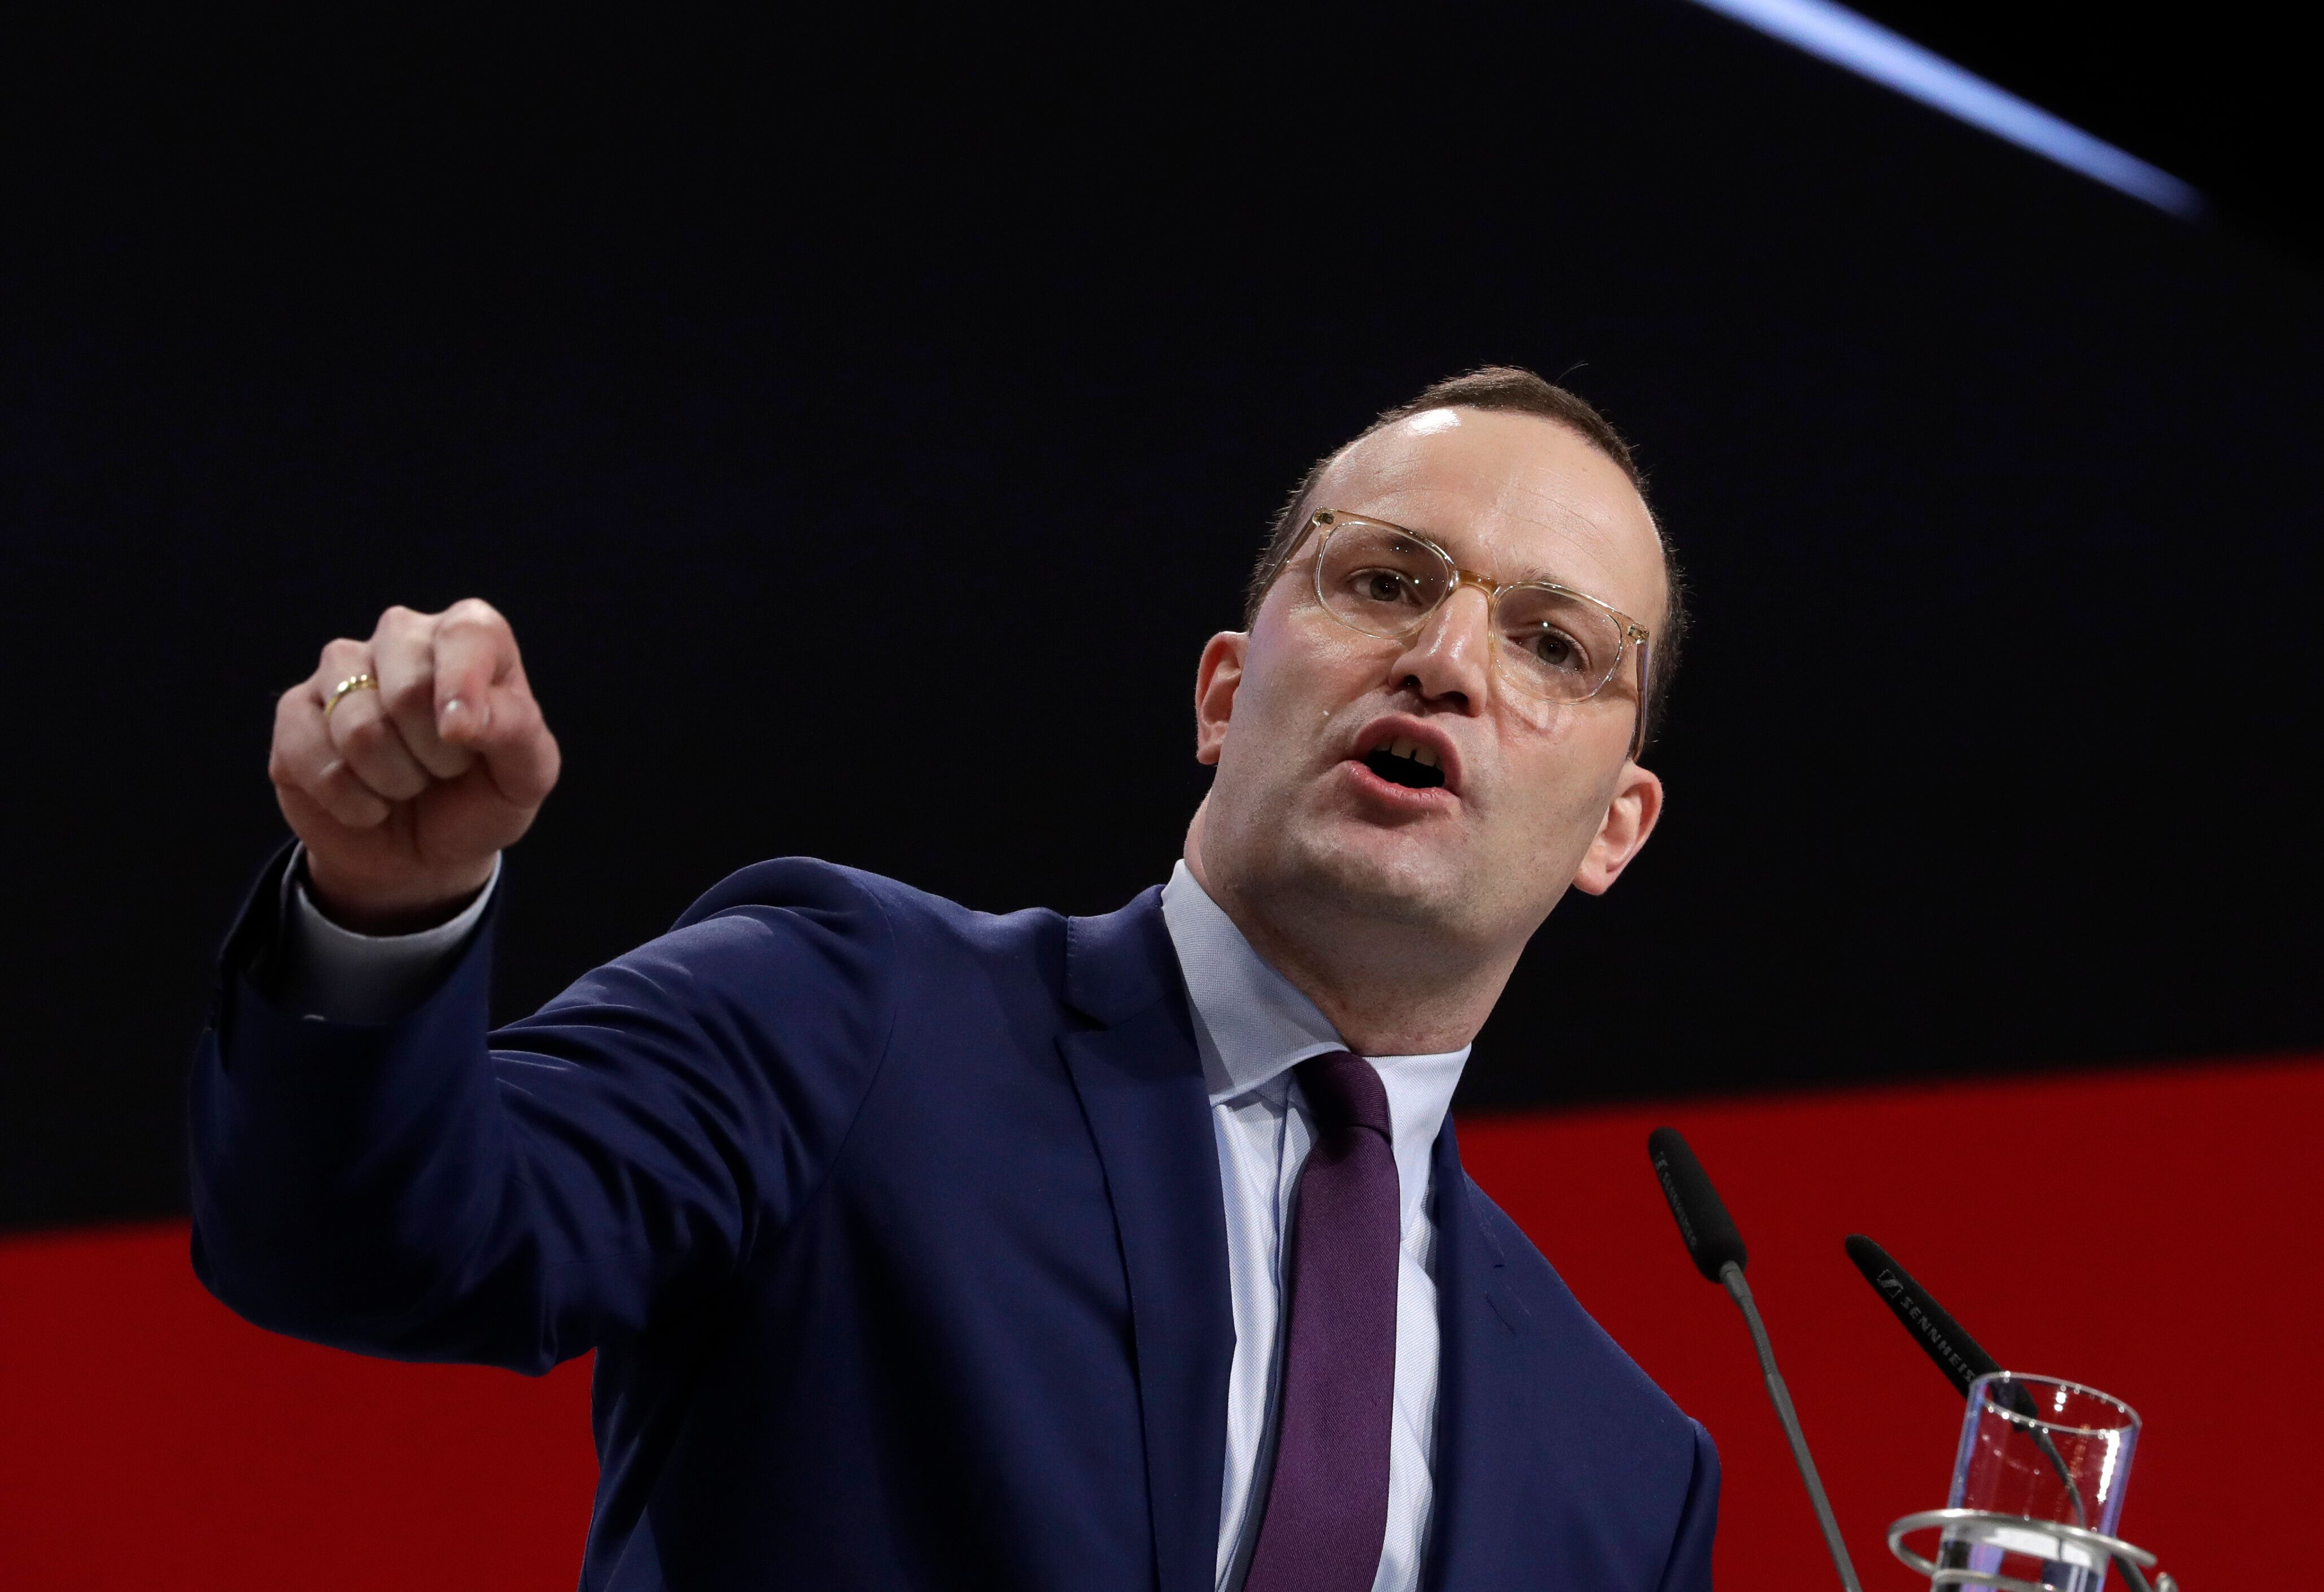 German Health Minister Jens Spahn delivers his speech when running as chairman at the party convention of the Christian Democratic Party CDU in Hamburg, Germany, Friday, Dec. 7, 2018. 1001 delegates are electing a successor of German Chancellor Angela Merkel who doesn't run again for party chairmanship after more than 18 years at the helm of the party. (AP Photo/Michael Sohn)